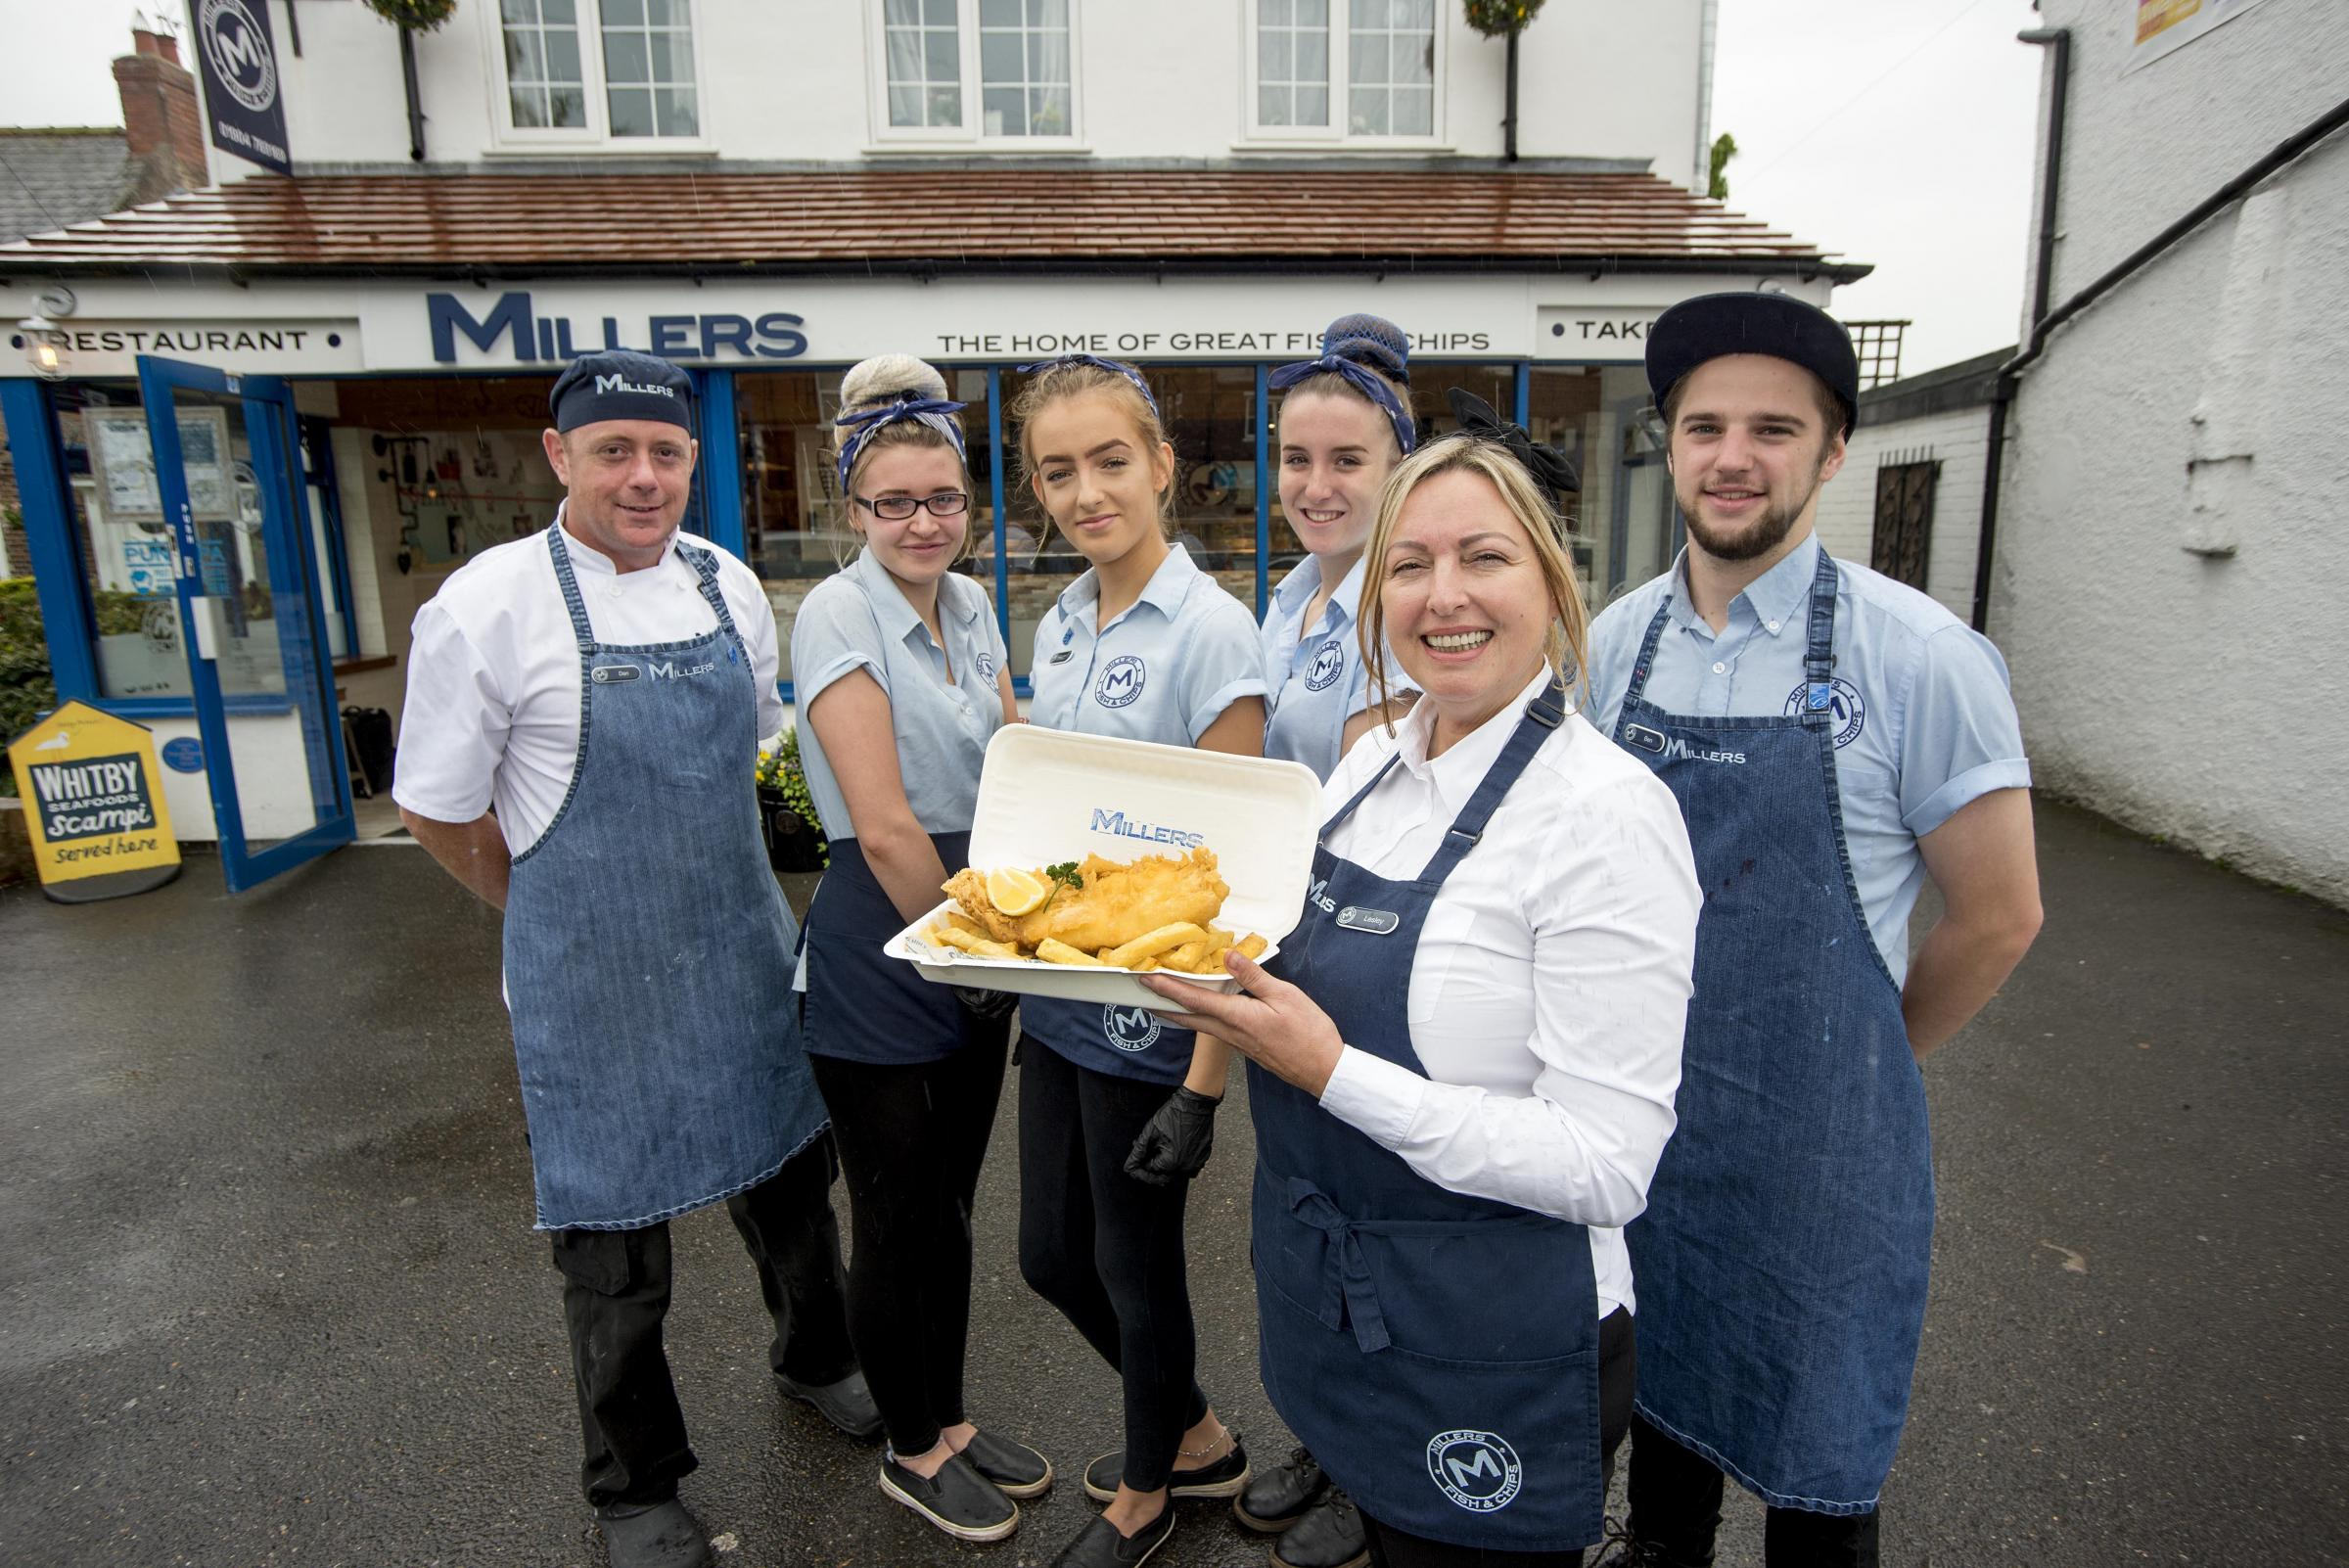 Miller's fish and chips, Haxby, York.From the left, fryer Dan Hamilton, Gemma Popely, Lauren Dixon, Lesley Miller co-owner and restaurant manager, Ellie Duck and Ben Vollans.